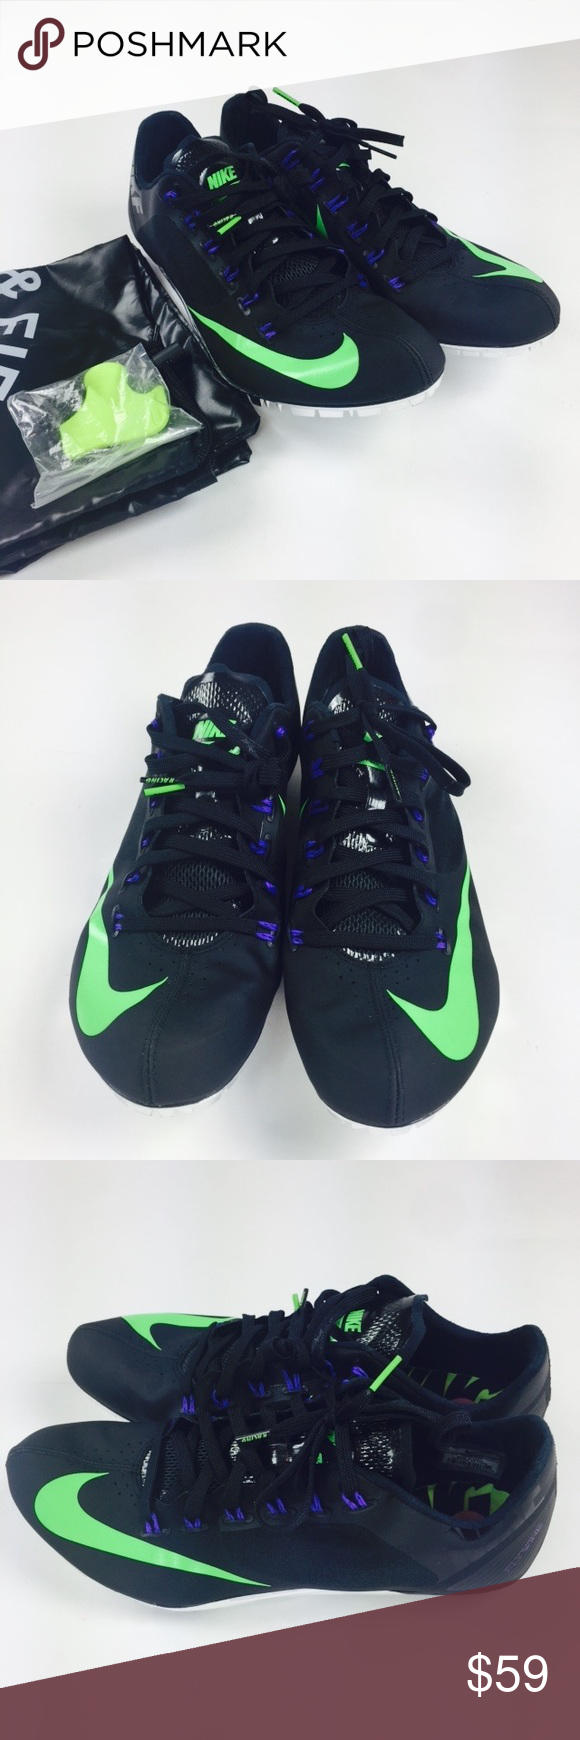 c4c1e21417bf54 Nike Zoom Superfly R4 Track Field cleats men s 12 Nike Zoom Superfly R4  Trach and Field